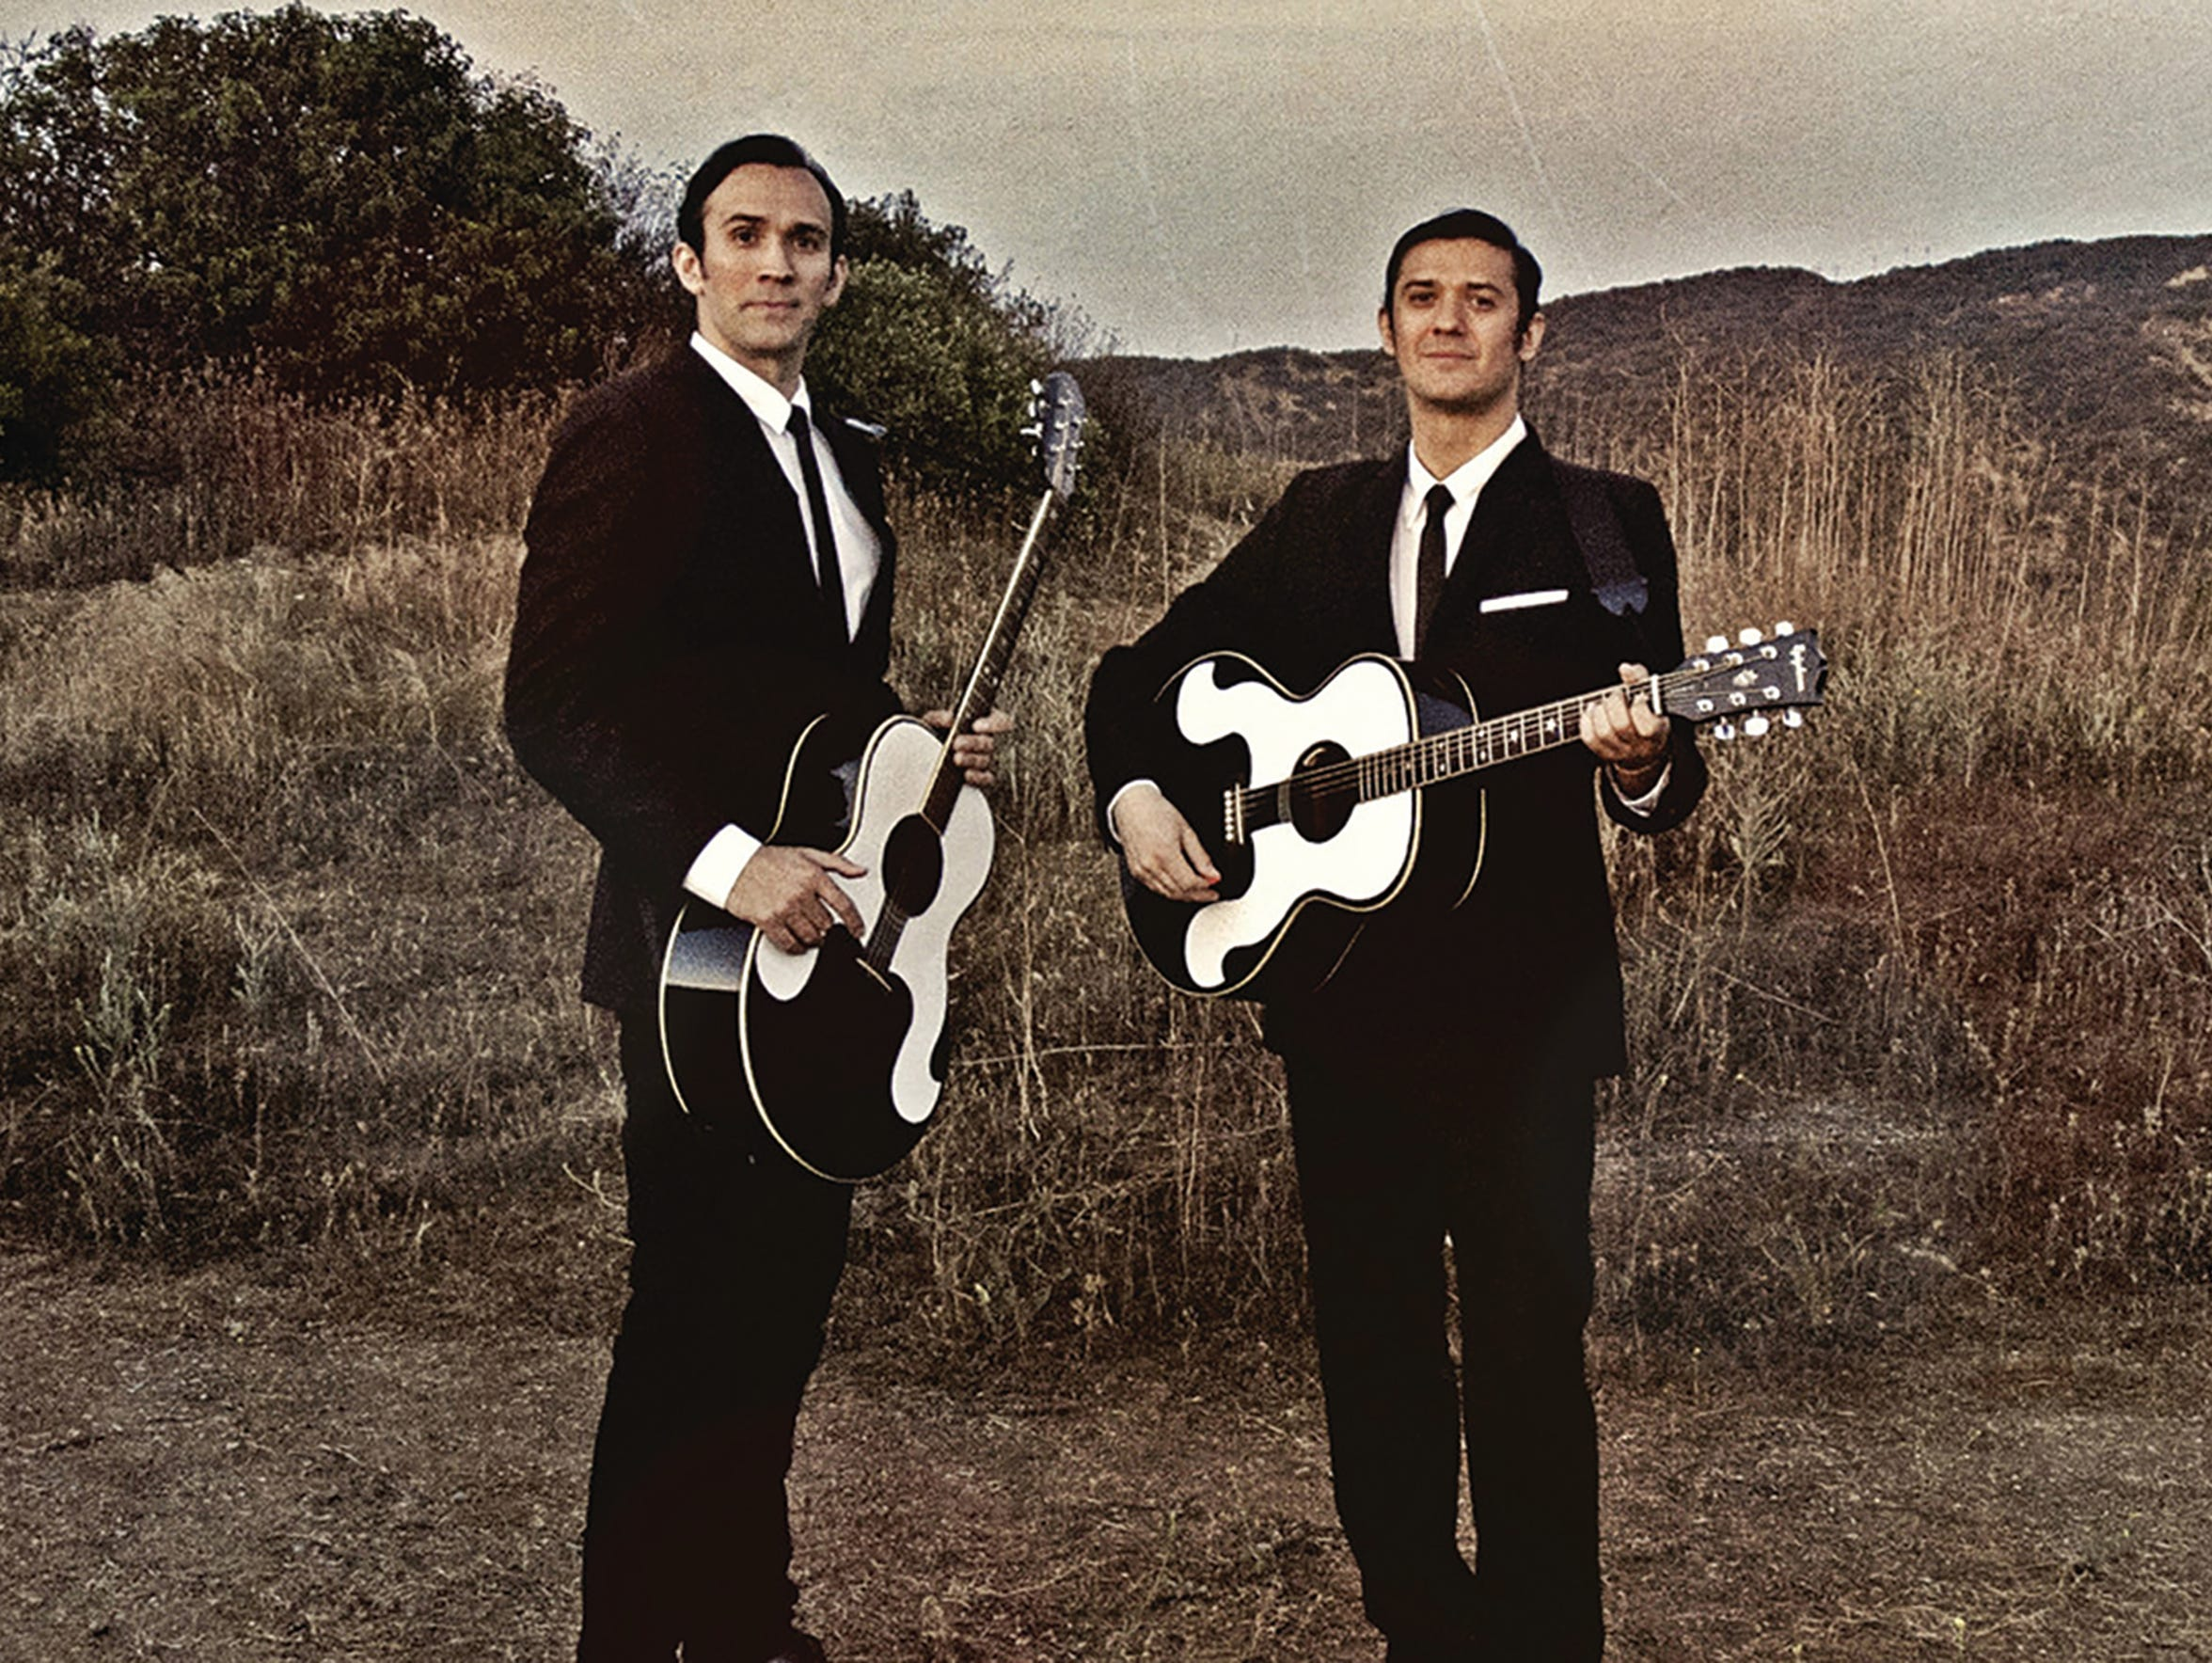 The Everly Brothers Experience featuring The Zmed Brothers